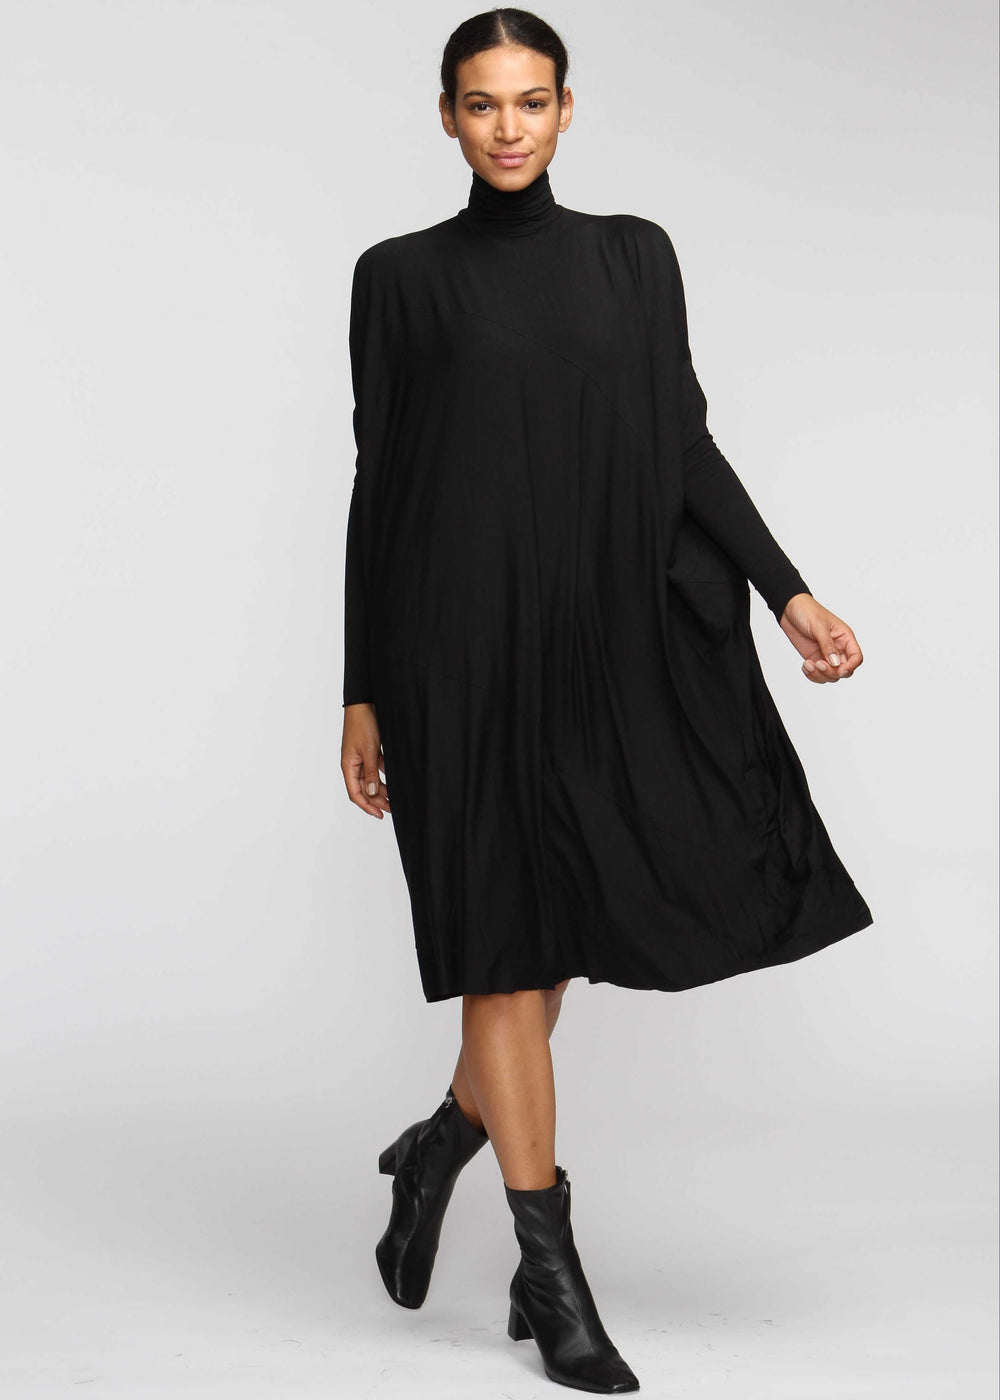 Fluid Turtleneck - Black - The Frock NYC